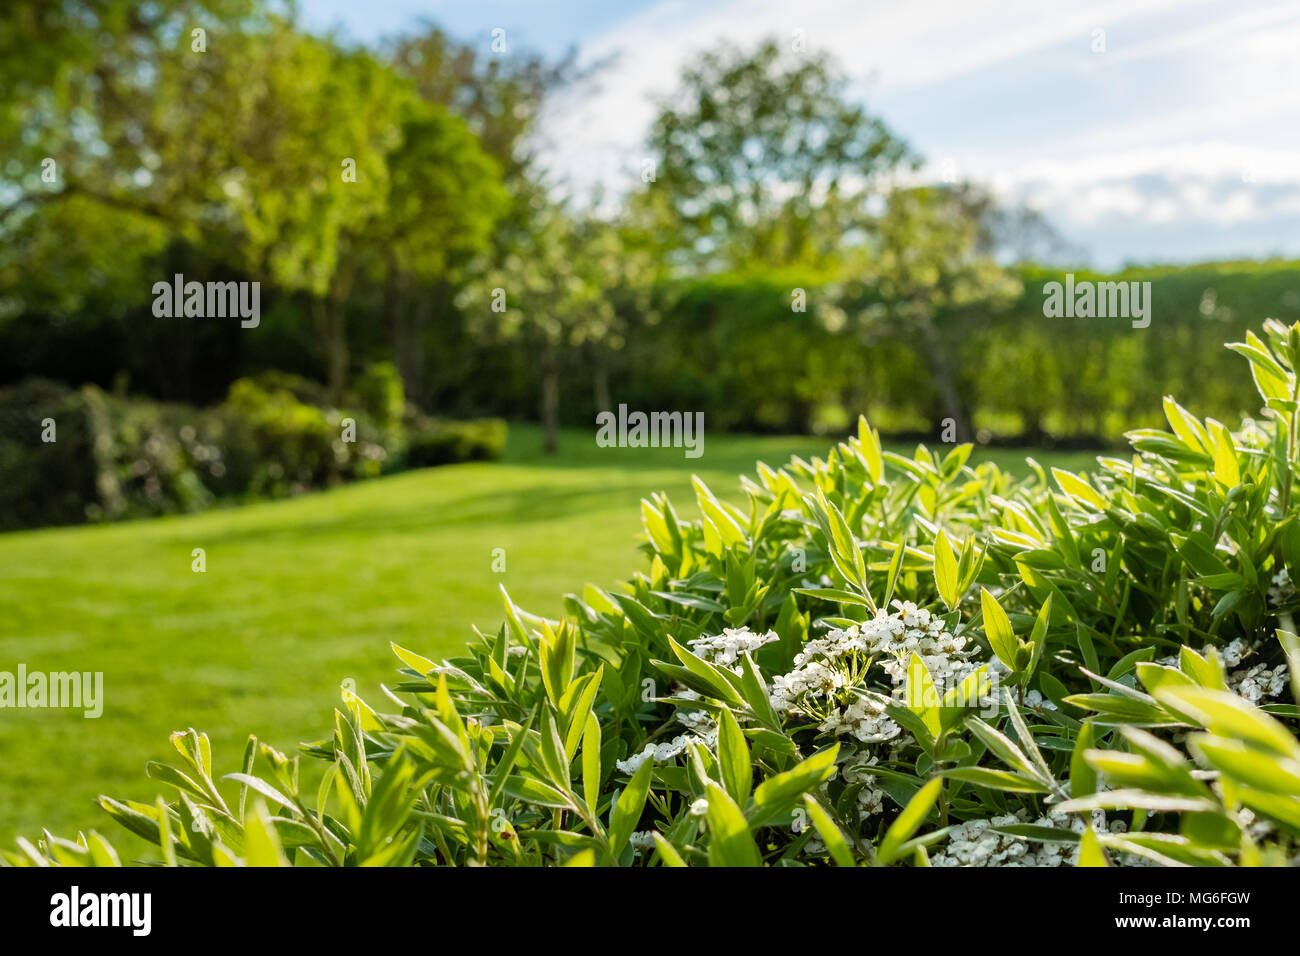 Shallow focus image of newly emerging white flowers seen on a large bush located in a large, well maintained summer garden. - Stock Image